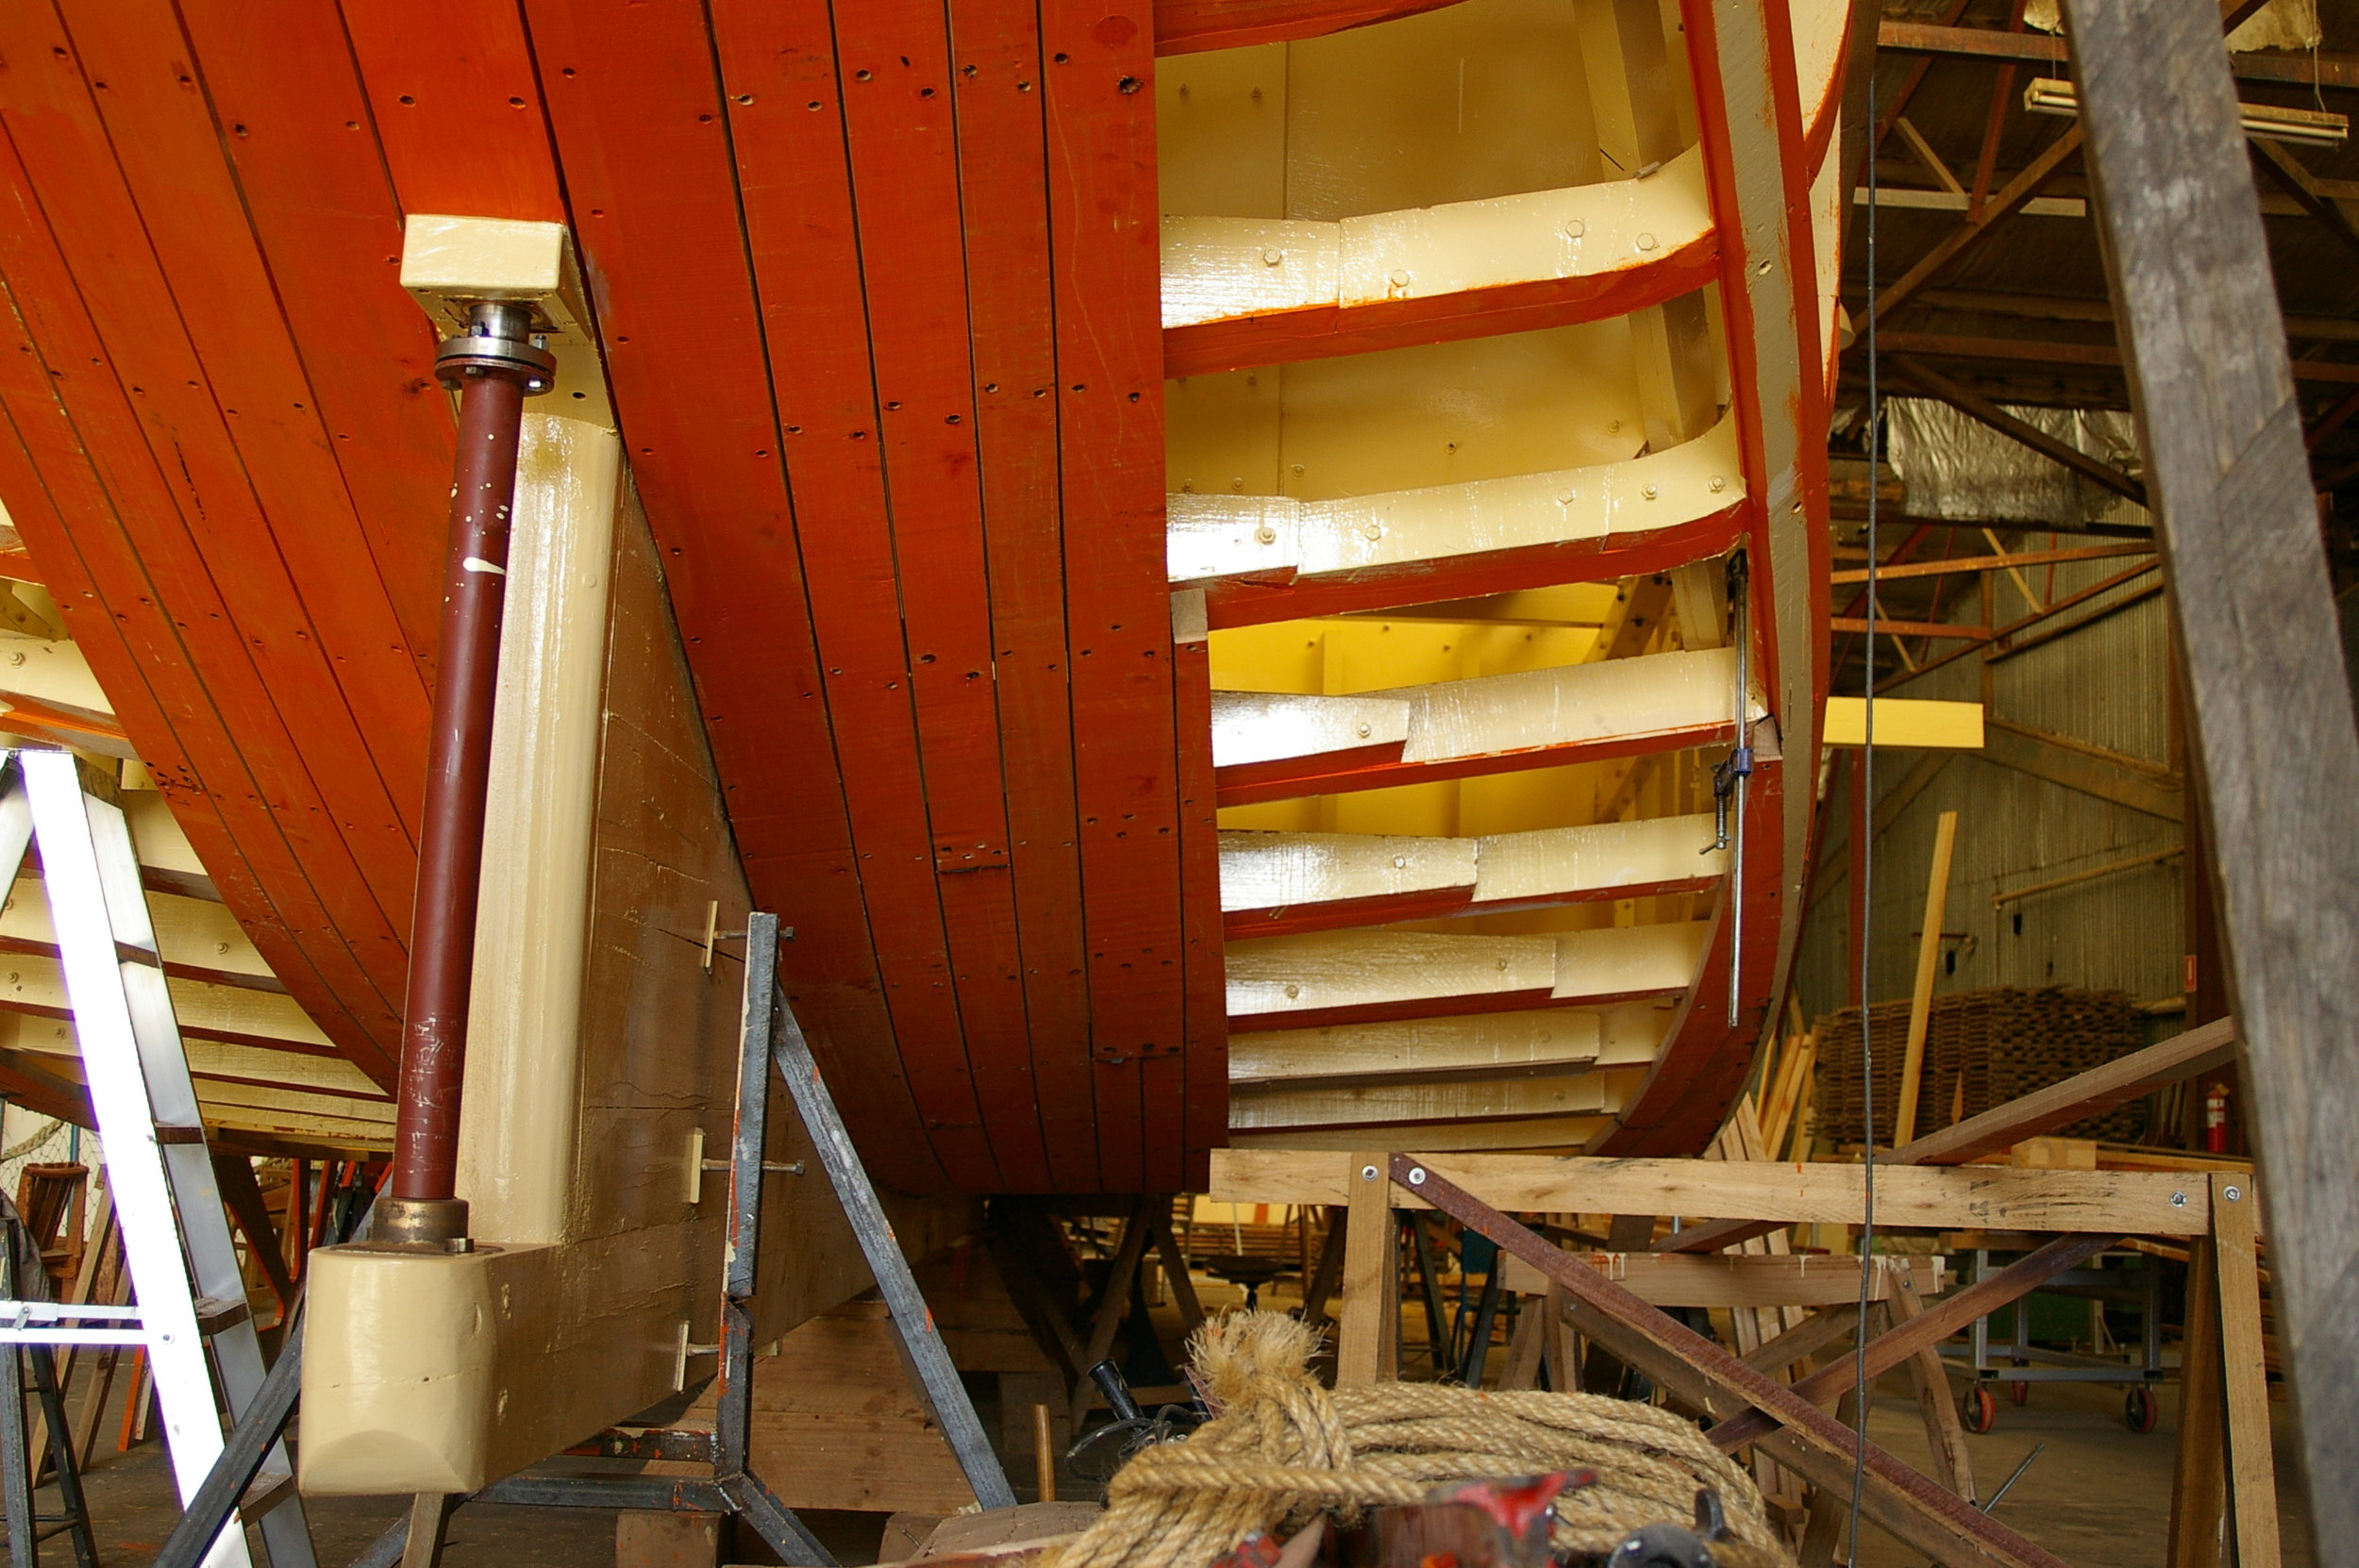 This was Paddle Steamer Curlip's, blue gum, carvel planked hull being fitted in 2006, it is hard to imagine that in 11 years the Teredo Worms have wreaked havoc, requiring major repairs to encapsulate all underwater timbers. The board of management of P.S.Curlip Inc, with advices from our appointed AMSA Marine Surveyor and Naval Architect, Paul Bury and respected wooden boat builders and shipwrights Frecheville Heaney are progressing very well with the removal of all under hull timber planking. Our boat repair committee has systematically removed planks, a very labour intensive and lengthy process. We look forward to fitting the new timbers throughout the end of 2018 and into 2019.  With the 'extraordinary generosity of ordinary people' we have purchased the first grade Yellow Stringy Bark Planking, sourced from the Victorian High Country and milled by Mectec in Newmeralla. This return to the original structural integrity and traditional methodology is also important, as it allows P.S.Curlip Inc to retain it's original Marine Survey status, without a re certification.